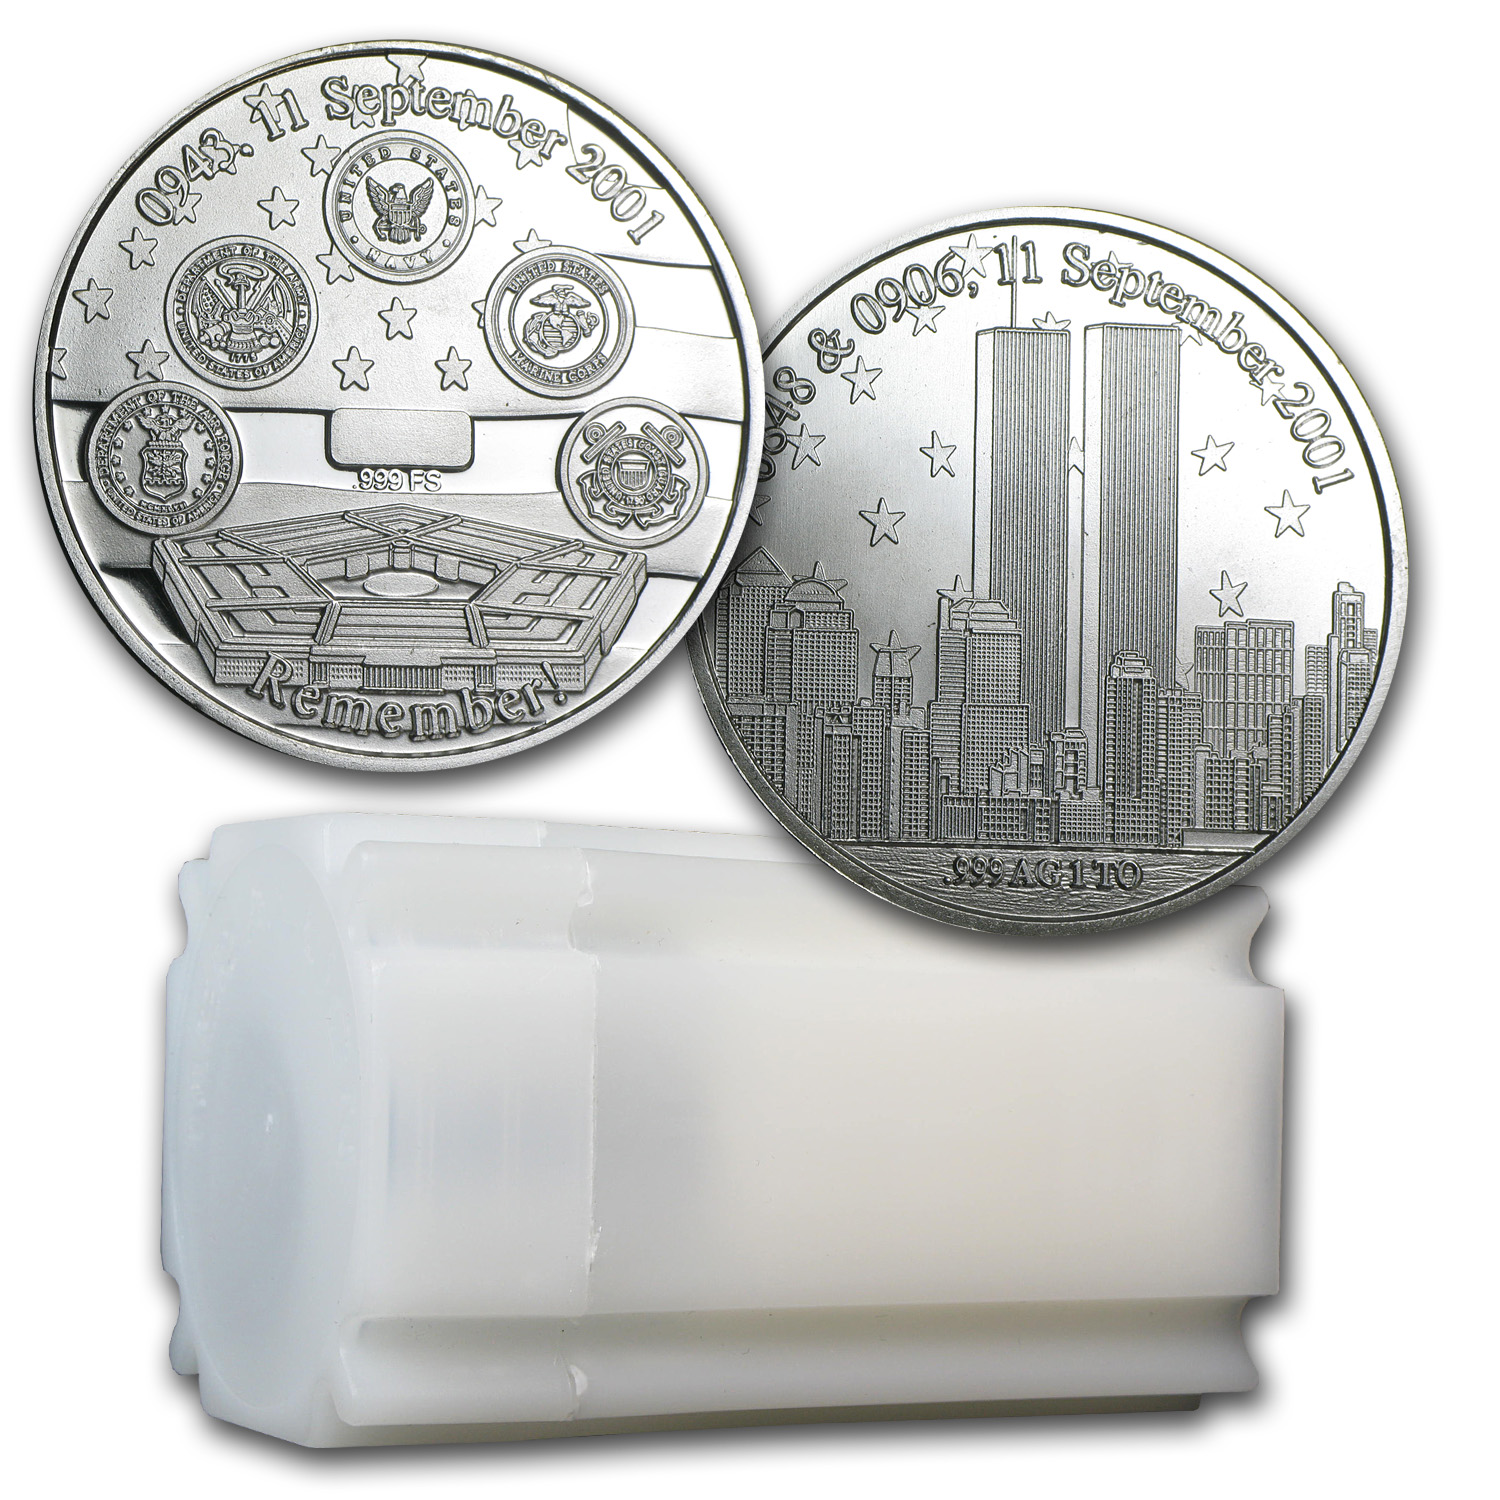 1 oz Silver Round - Remember! Twin Towers 9/11/2001